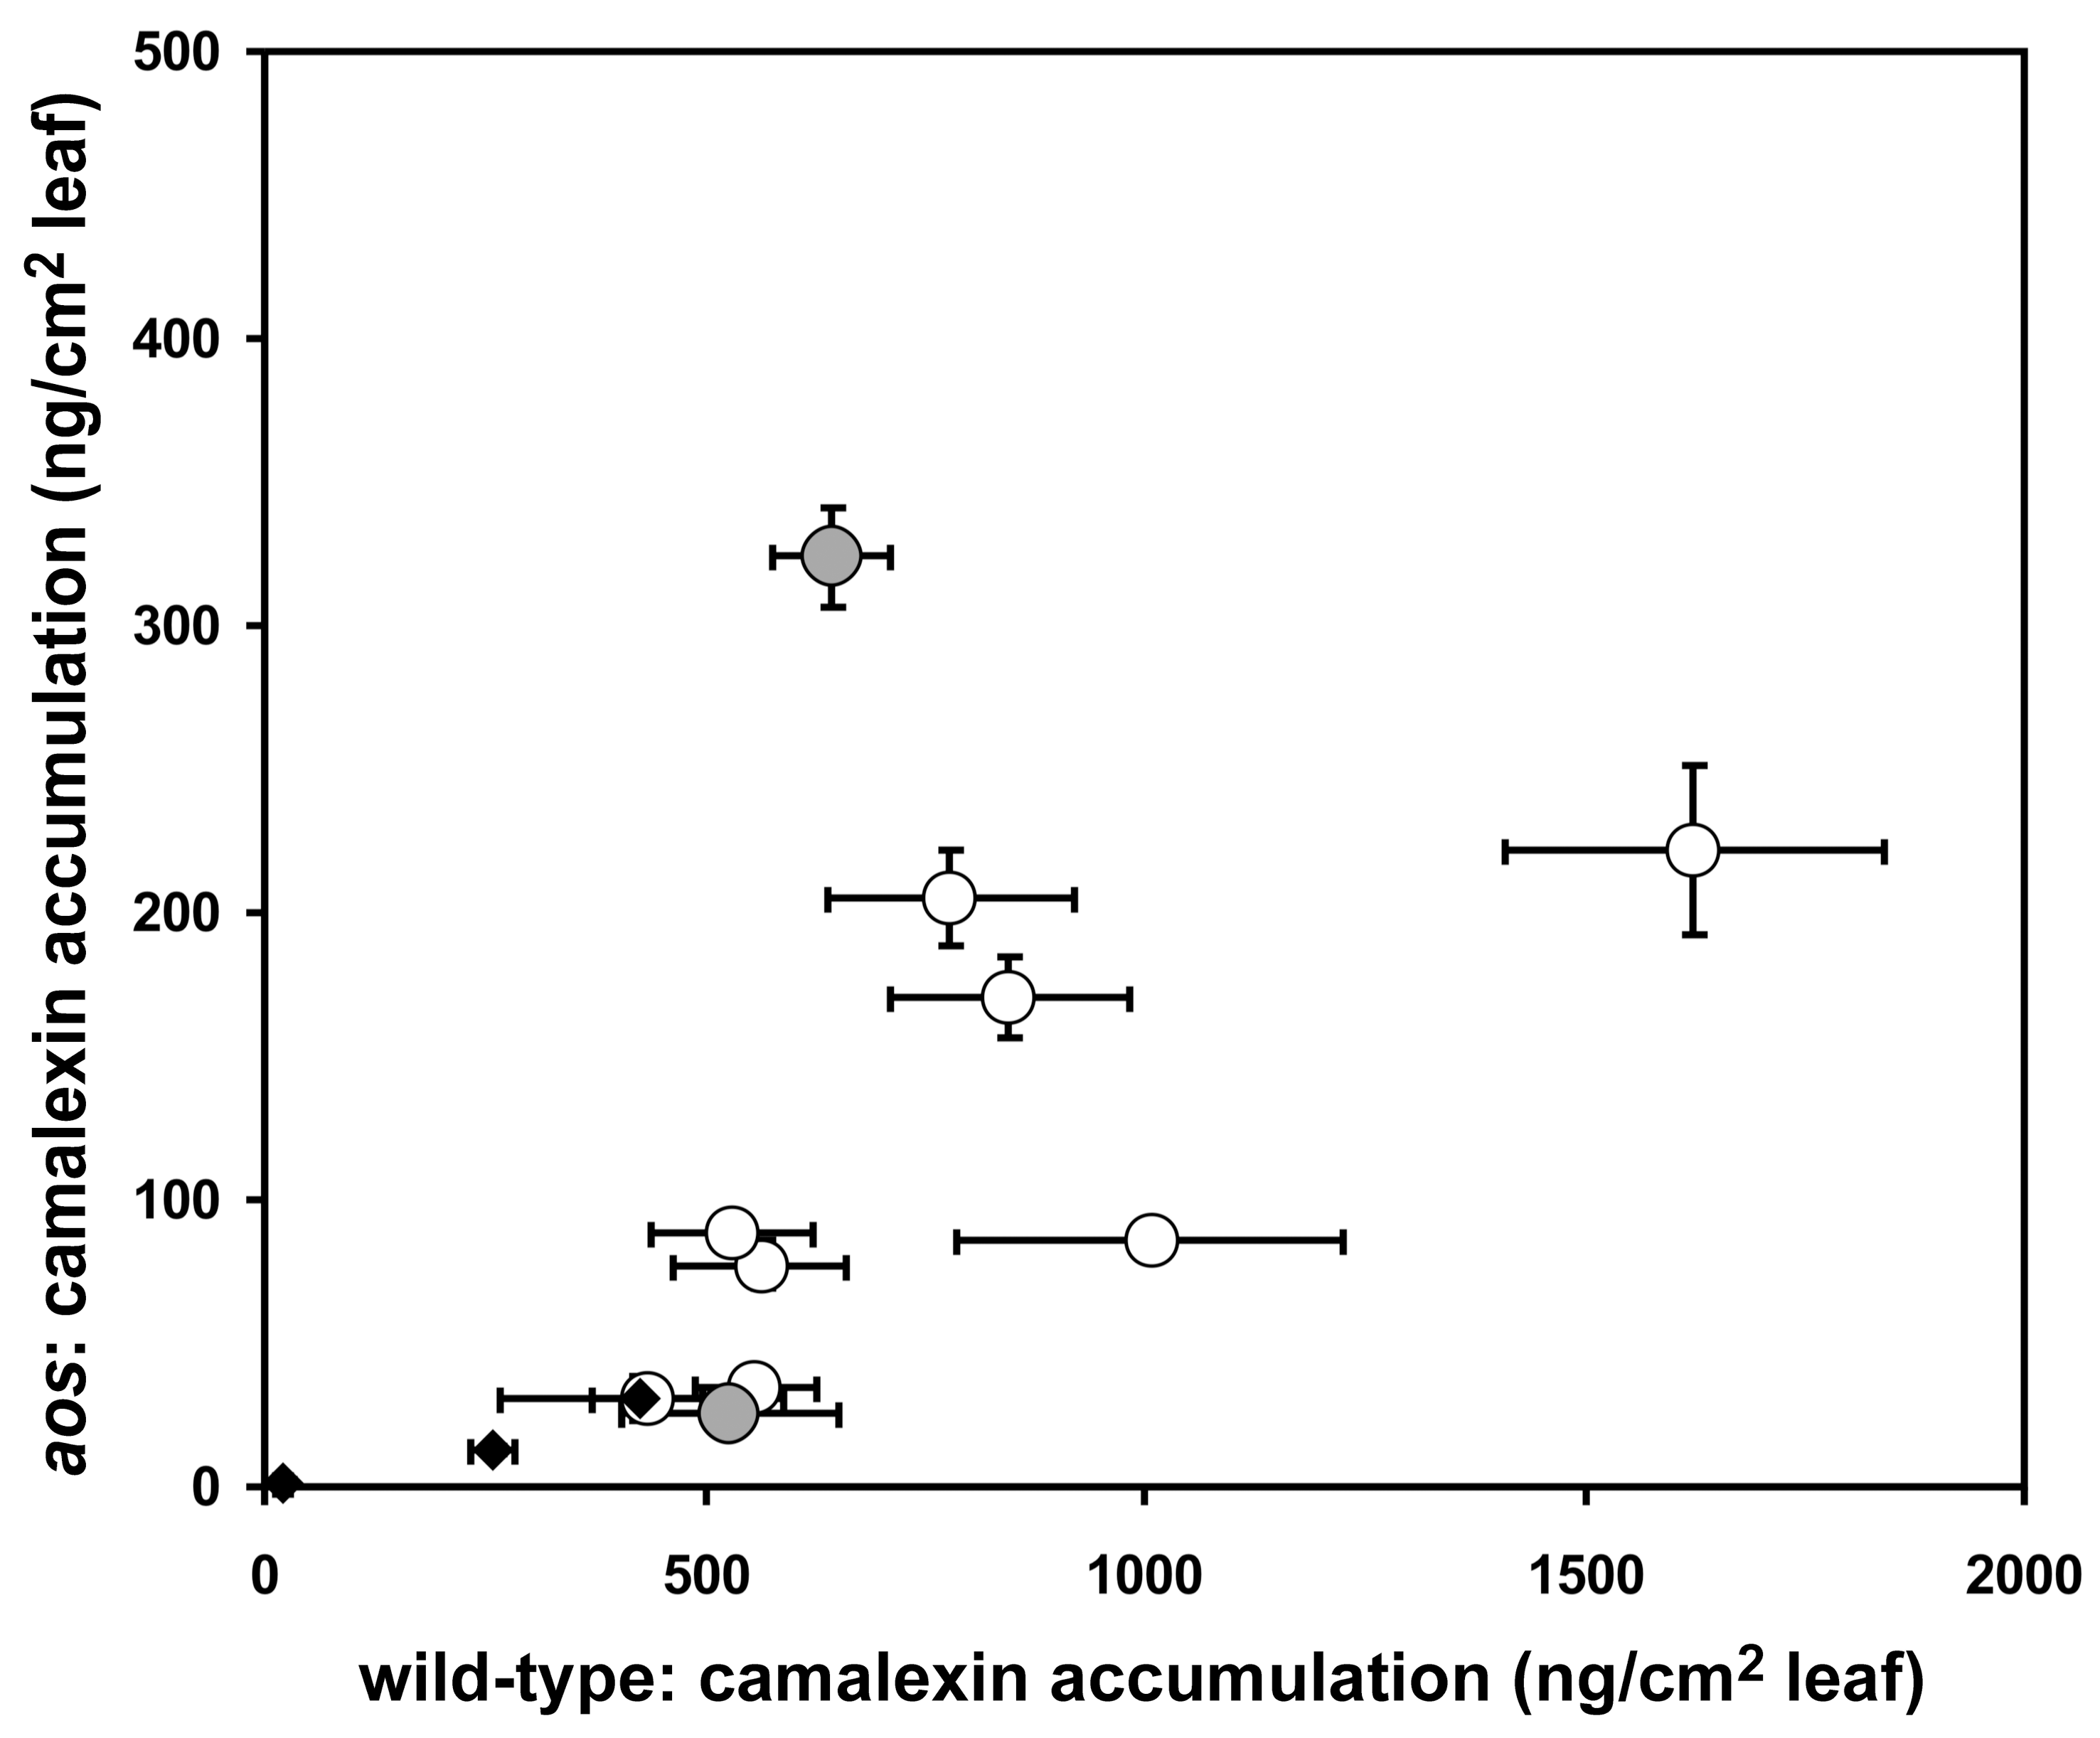 Variation in camalexin accumulation in jasmonate-deficient <i>A. thaliana</i>.